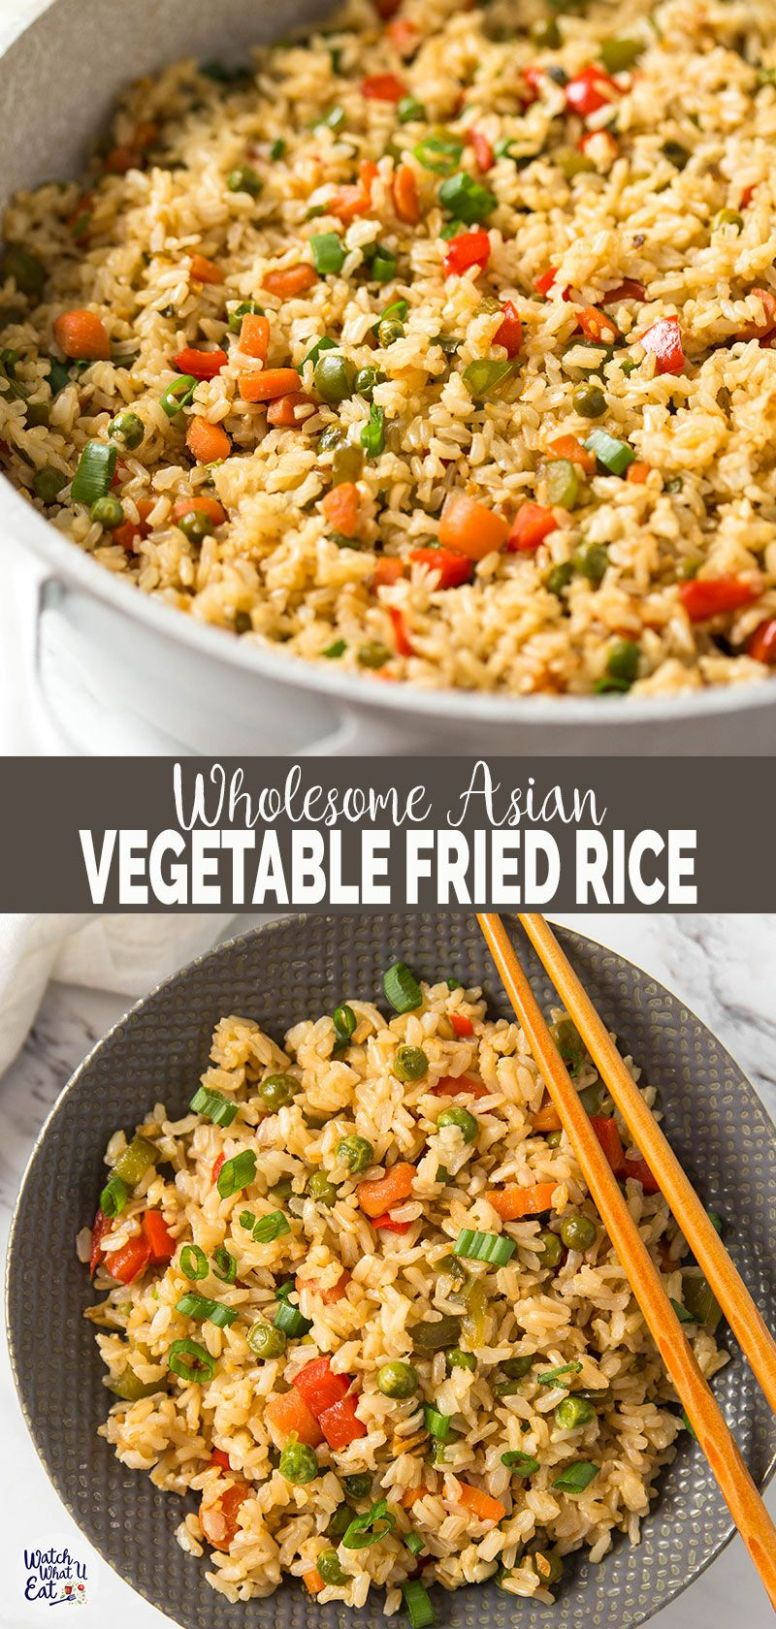 Healthy Fried Brown Rice With Vegetables - Rice Recipes Dairy Free